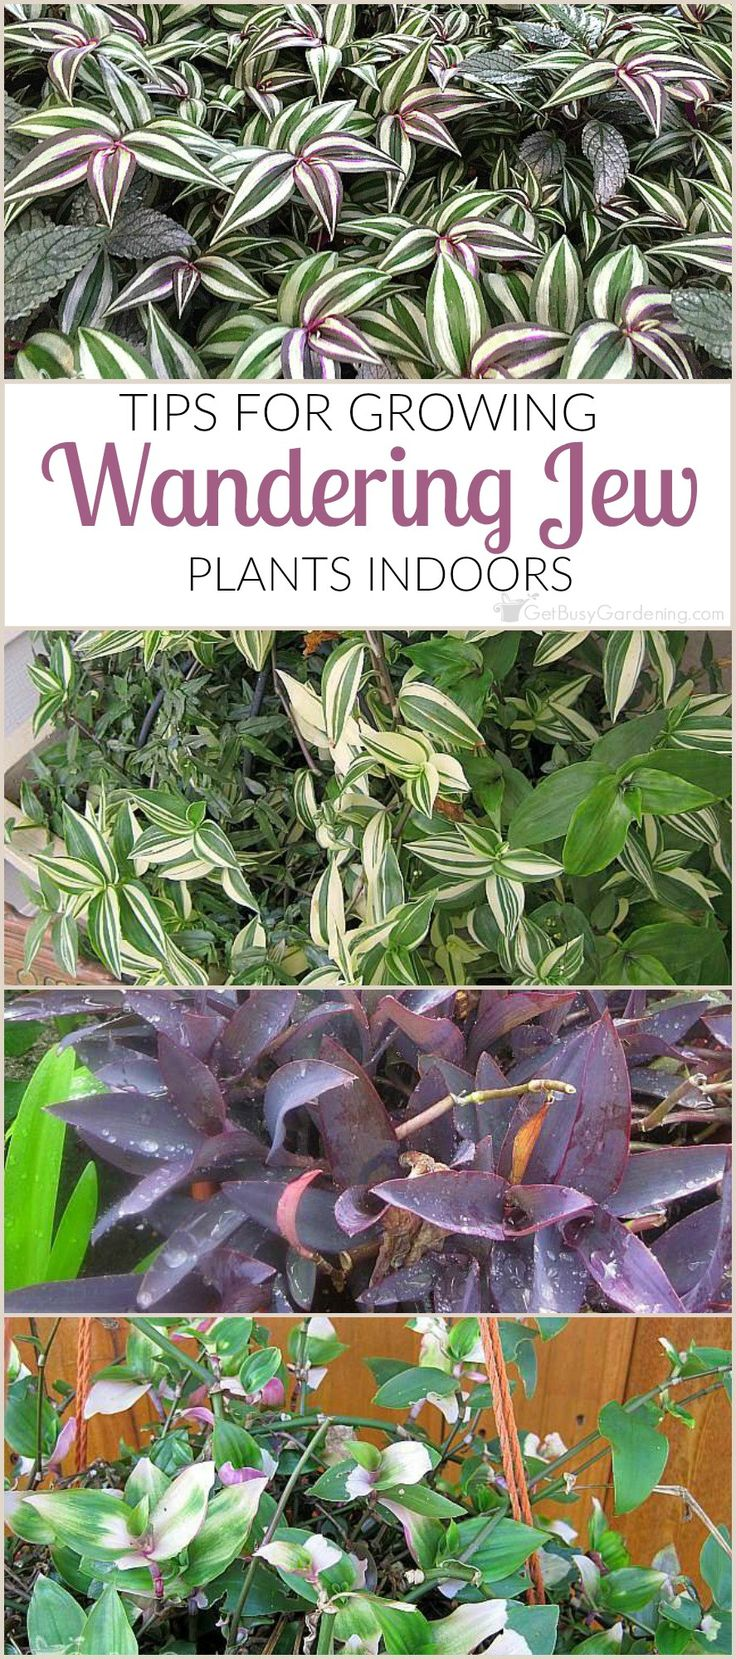 Wandering jew plants can be difficult to grow indoors. Once you get the hang of indoor wandering jew plant care, you can keep them growing year after year.